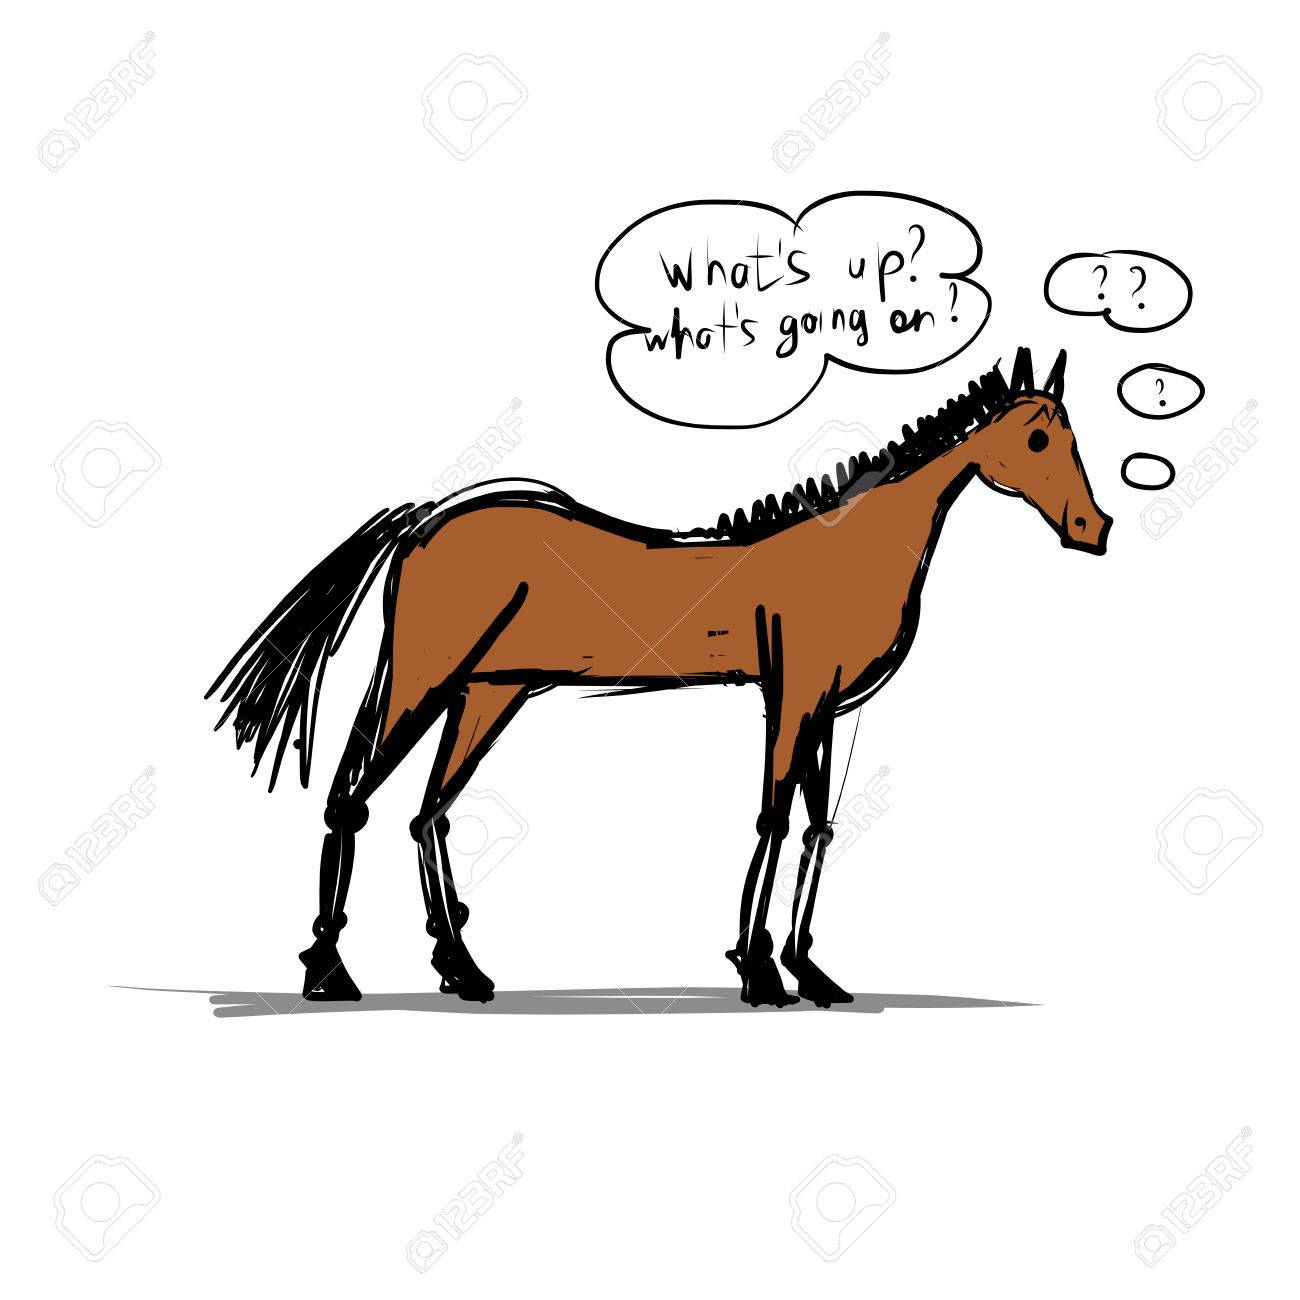 Funny Horse Sketch Royalty Free Cliparts Vectors And Stock Illustration Image 23470060